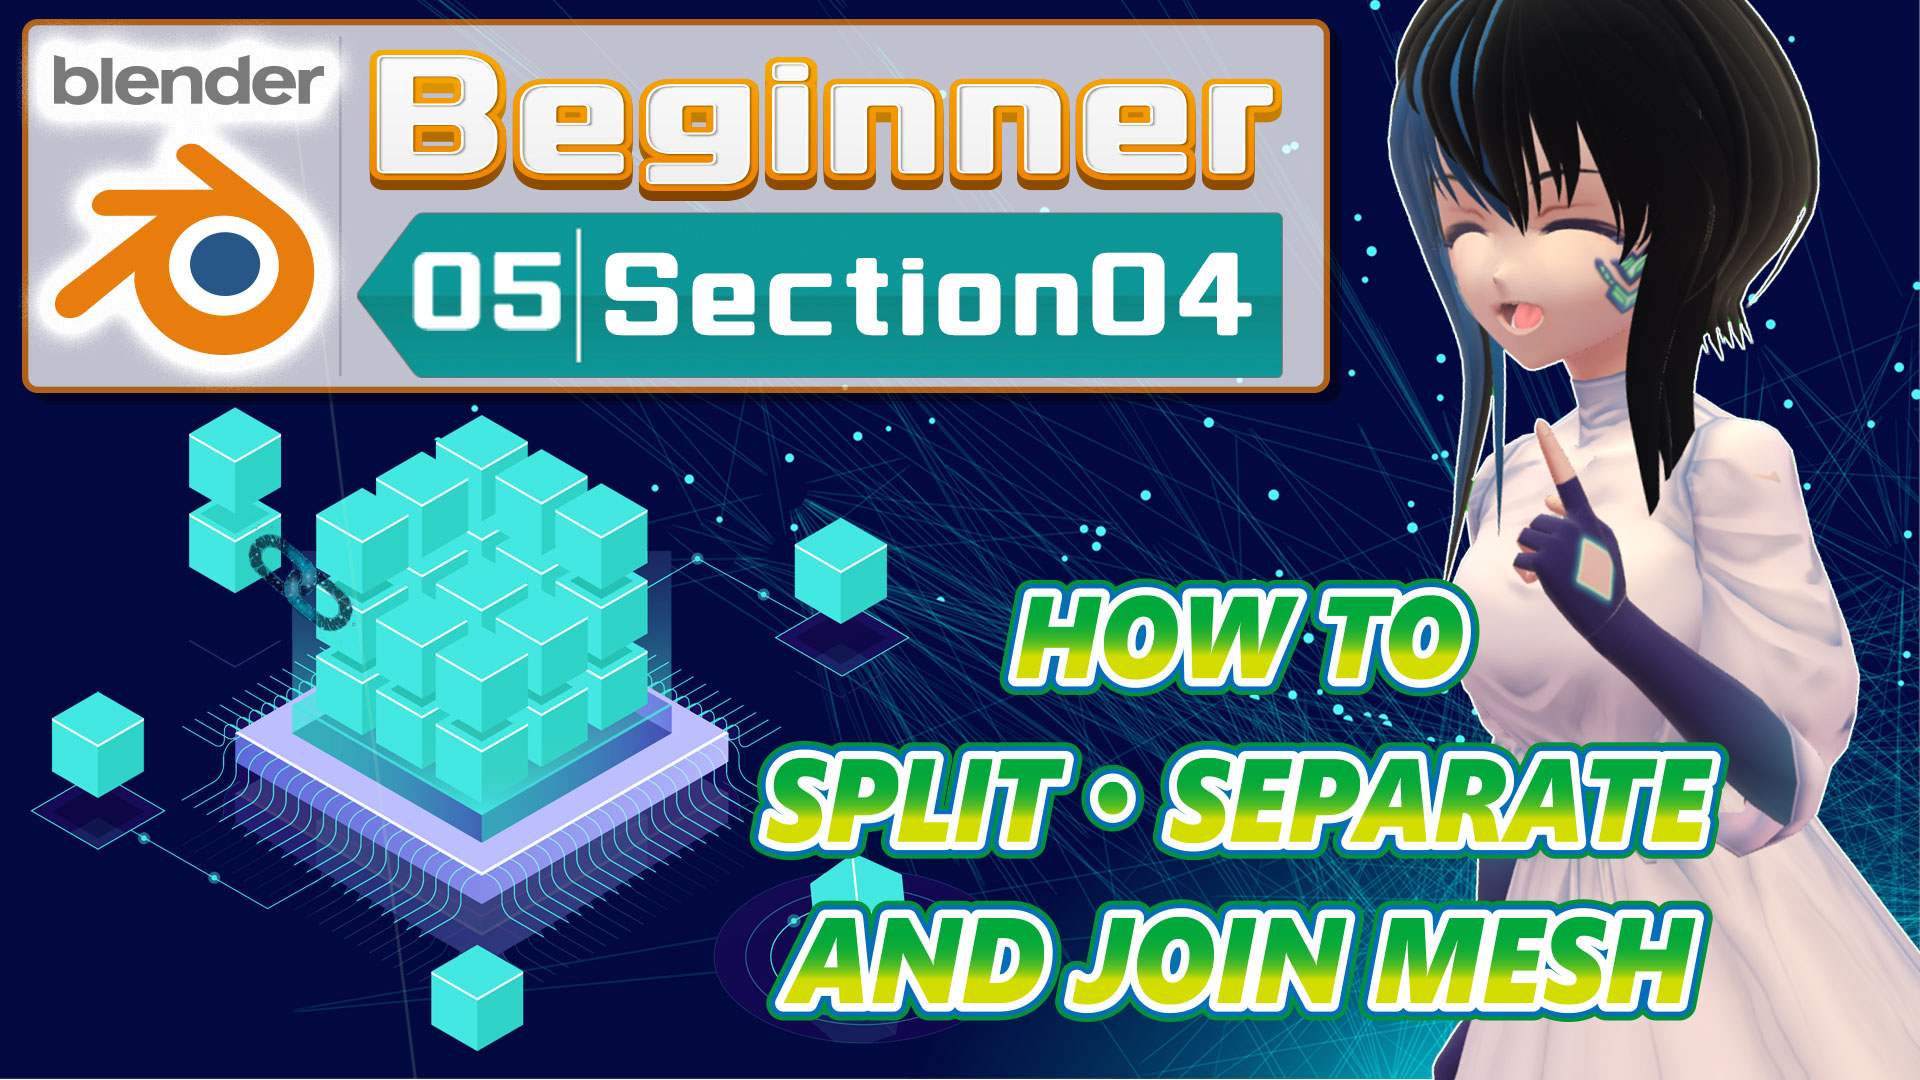 HOW TO SPLIT /SEPARATE AND JOIN MESH